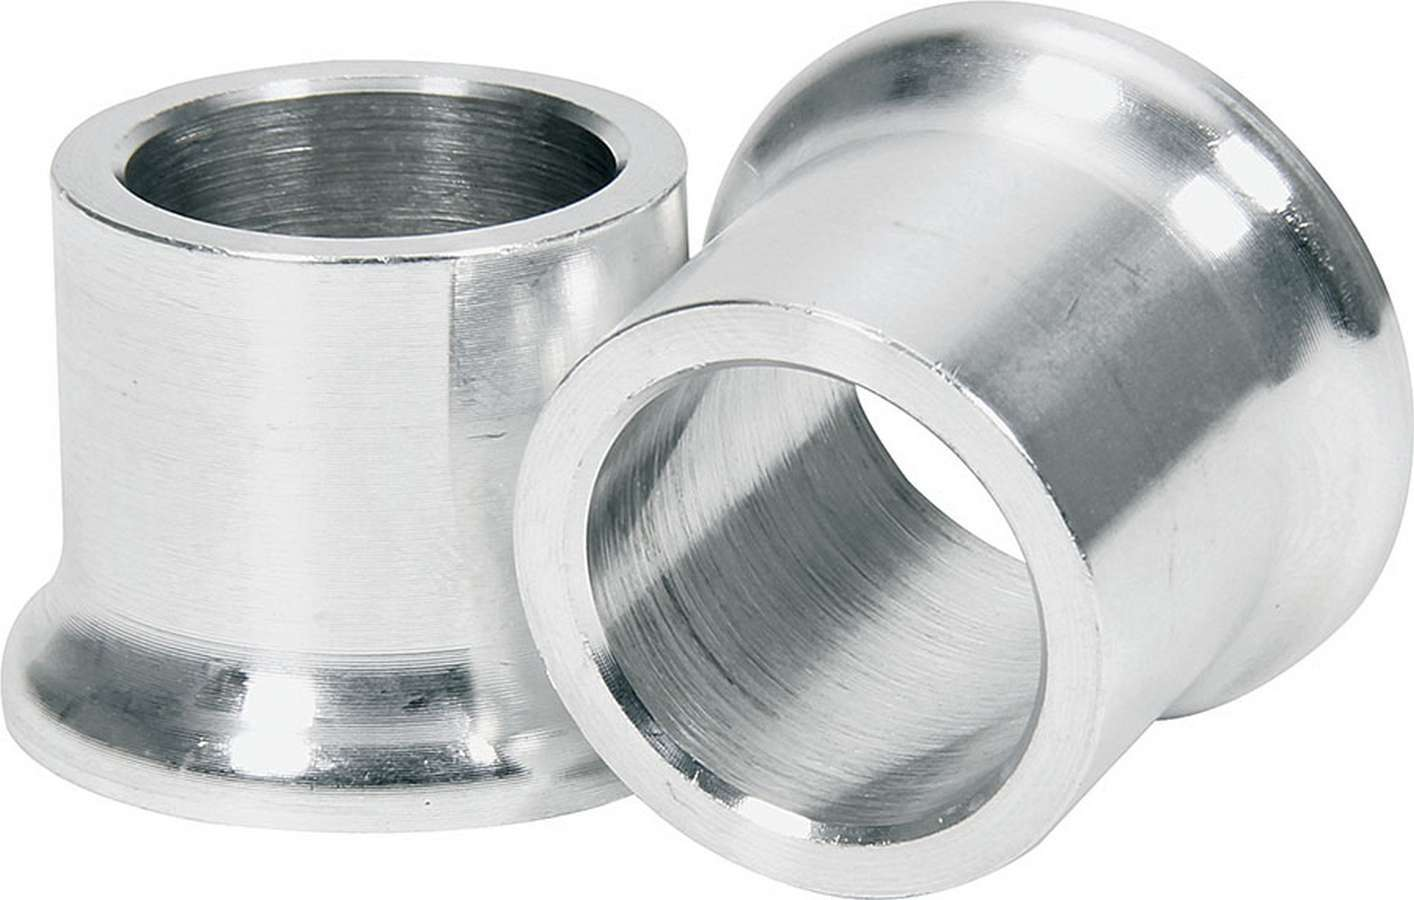 Allstar Performance 18599 Tapered Spacer, 5/8 in ID, 3/4 in Thick, Aluminum, Natural, Universal, Pair